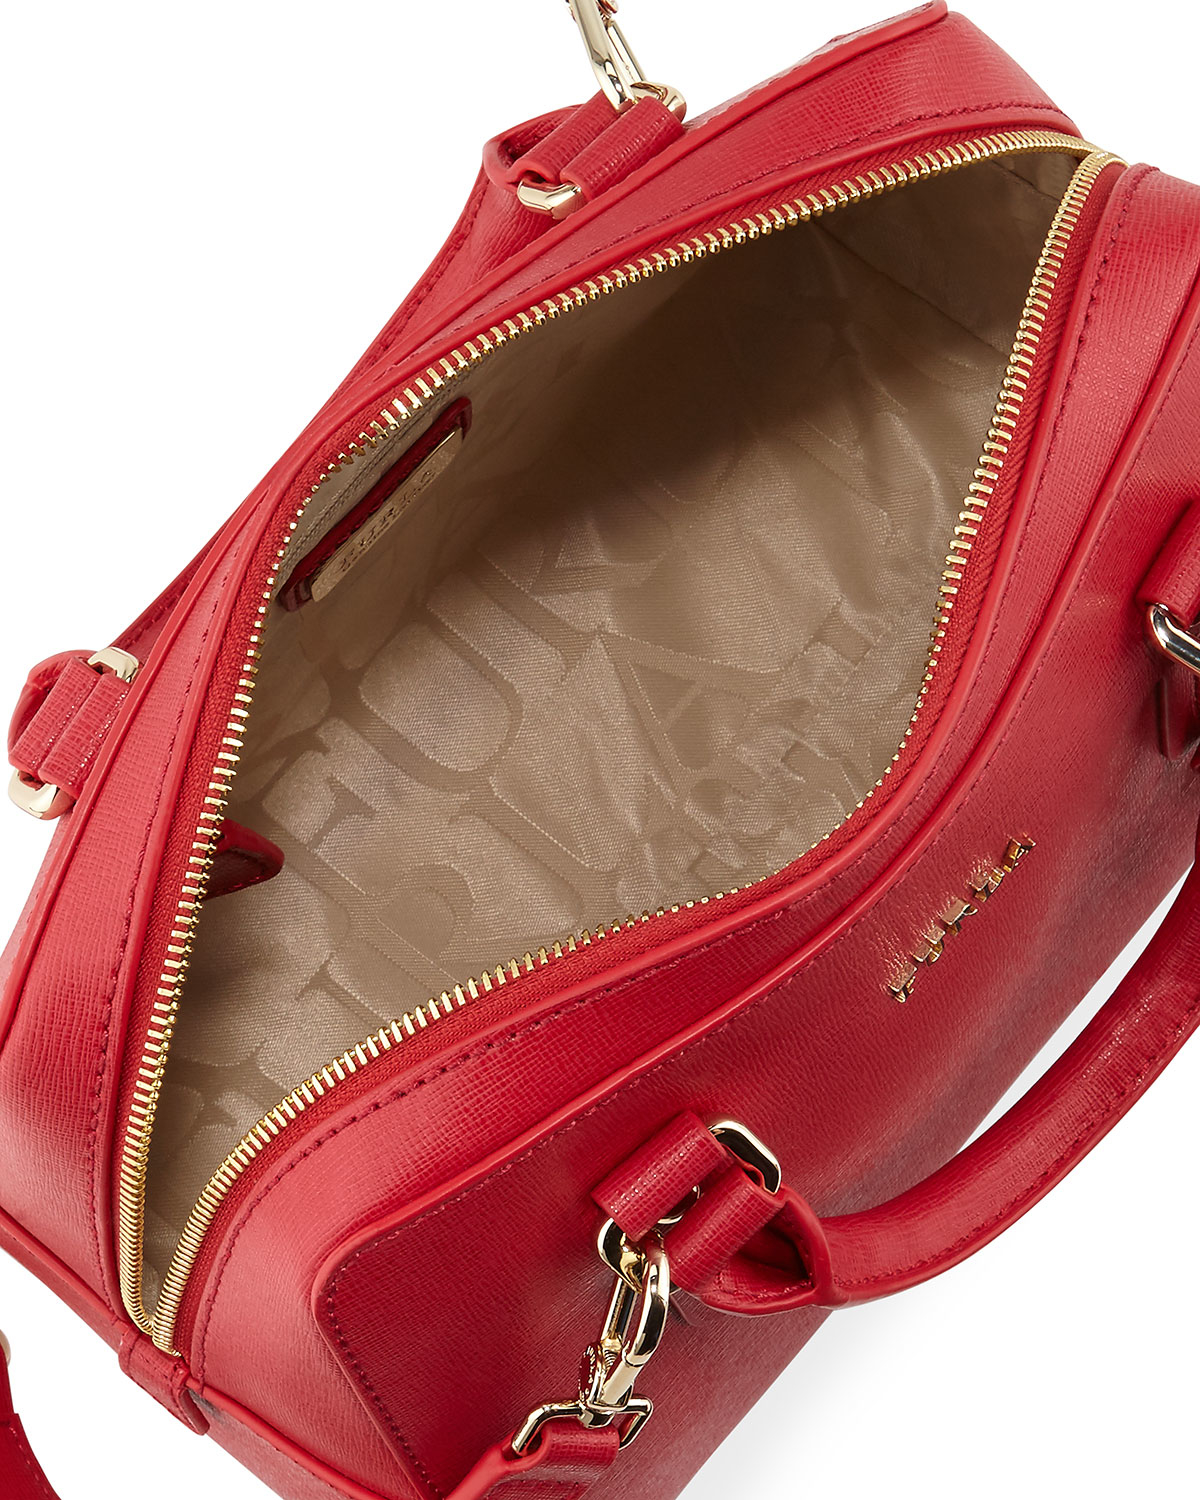 Furla Elena Small Leather Satchel Bag in Red | Lyst